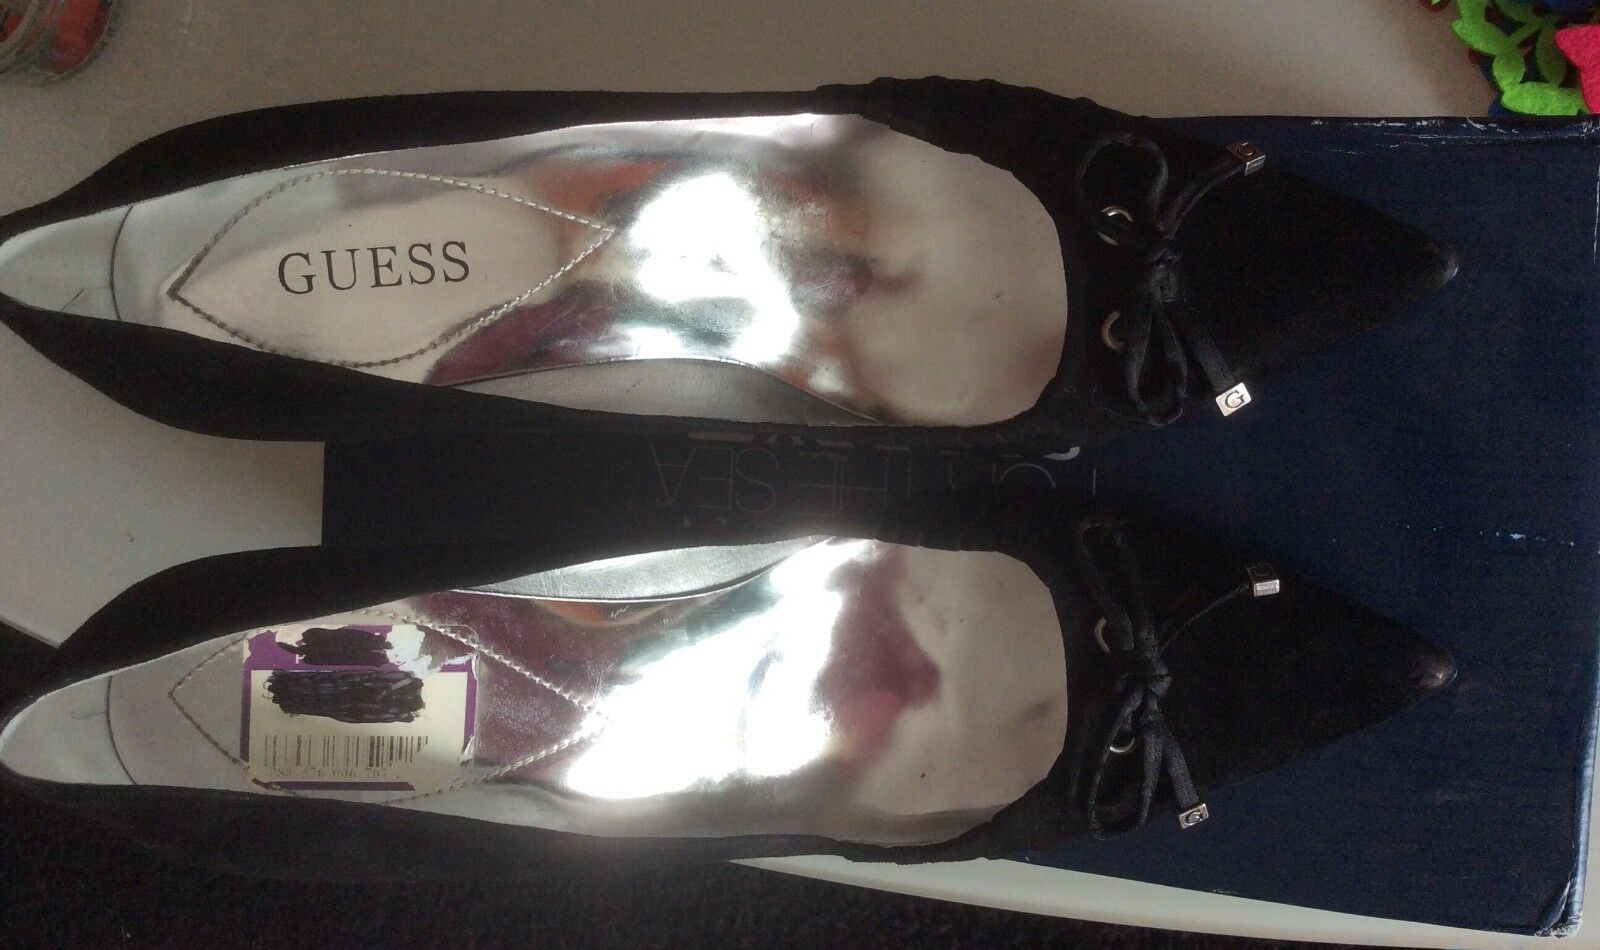 Guess Pumps Stiletto High High Stiletto Heels Schwarz Retro Gr. 38  + Kette gratis 89ceab